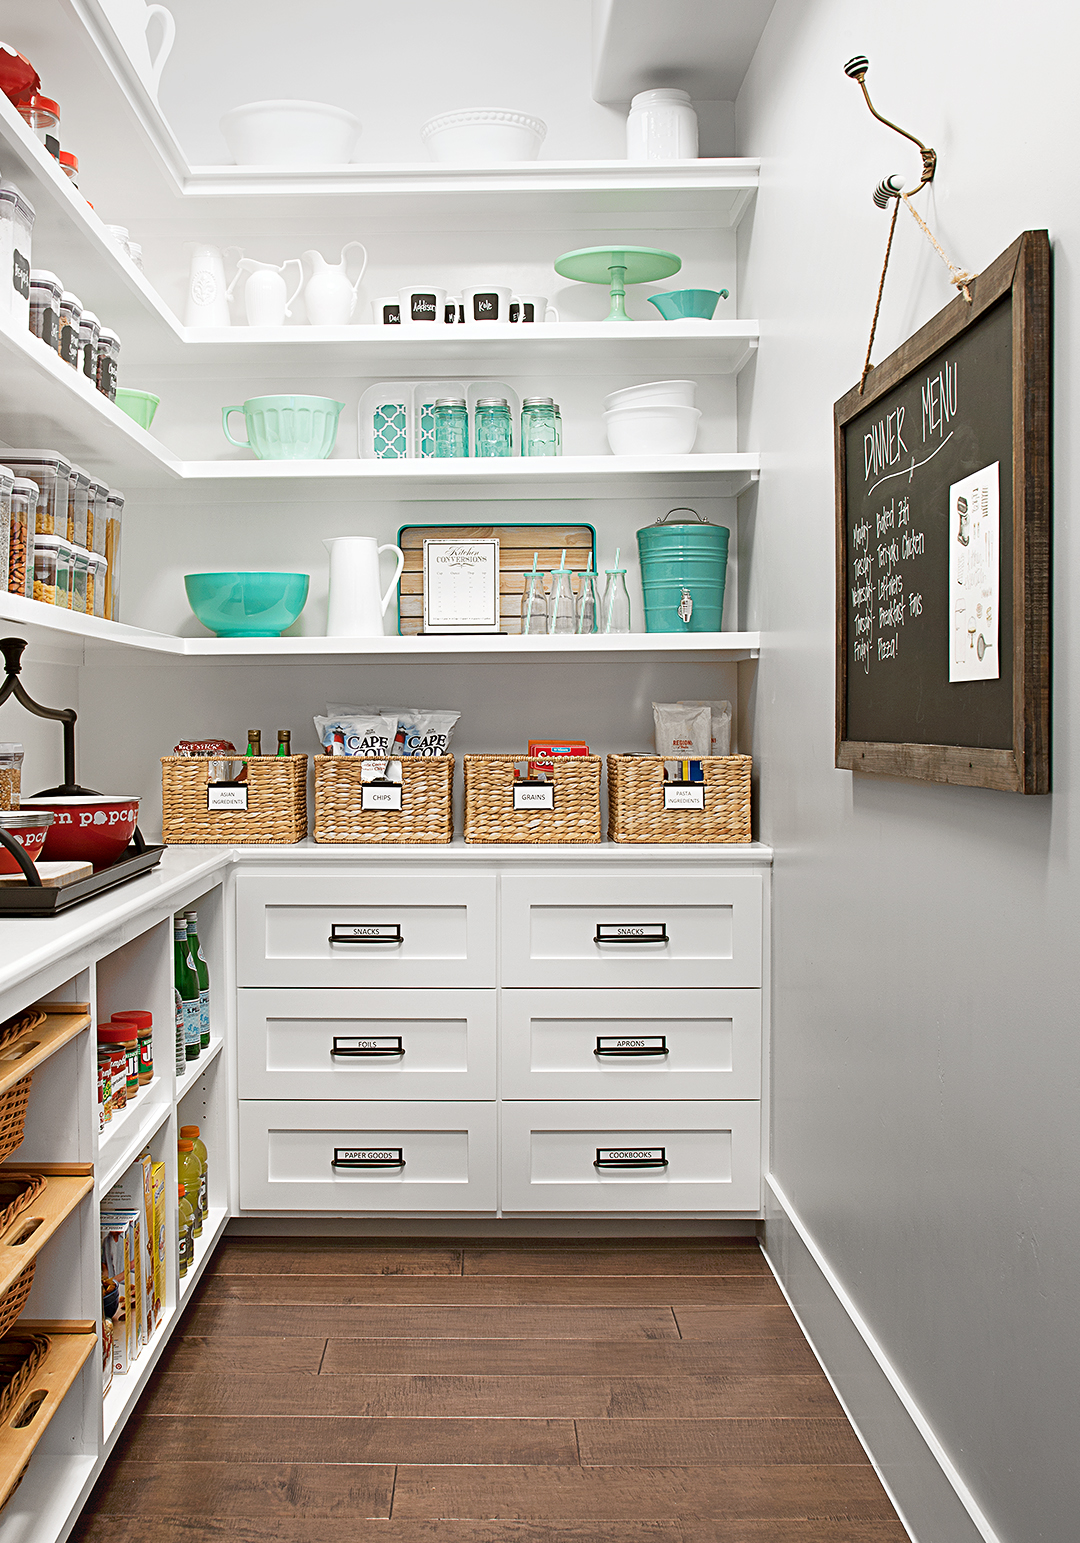 work cook kitchen tour organize pantry shelving drawers white